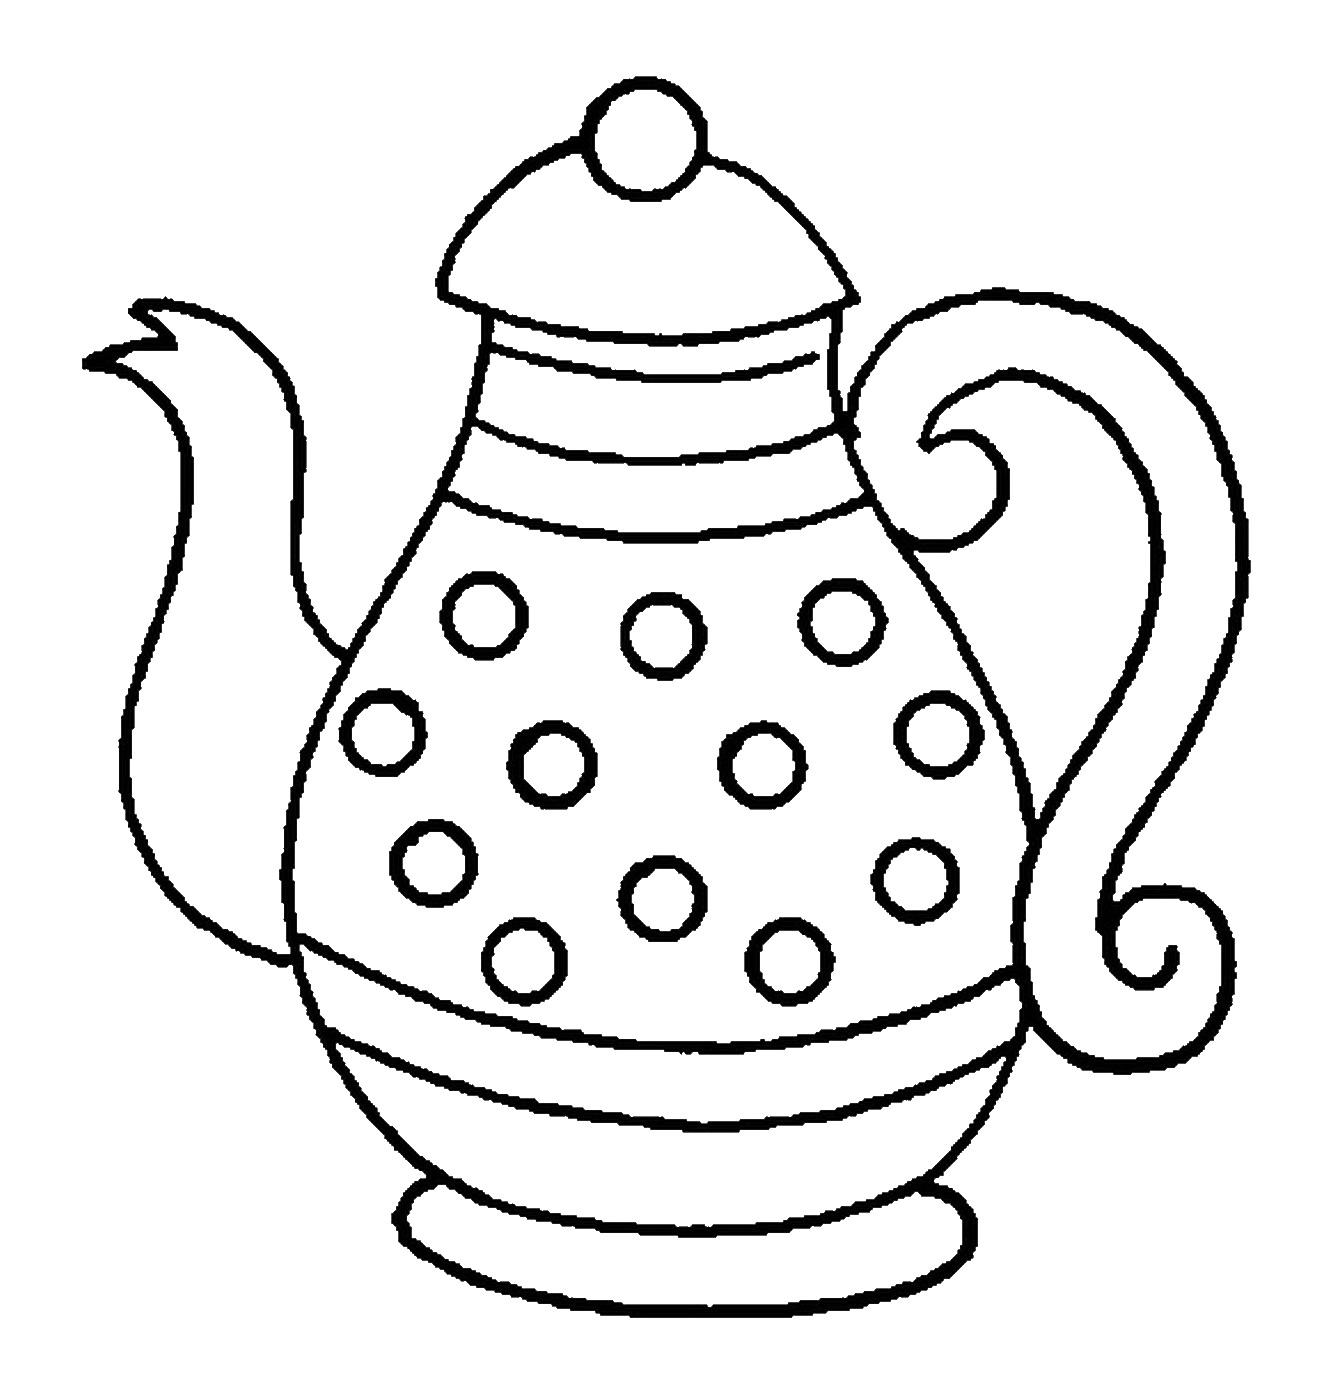 Kitchenware Coloring Pages for childrens printable for free